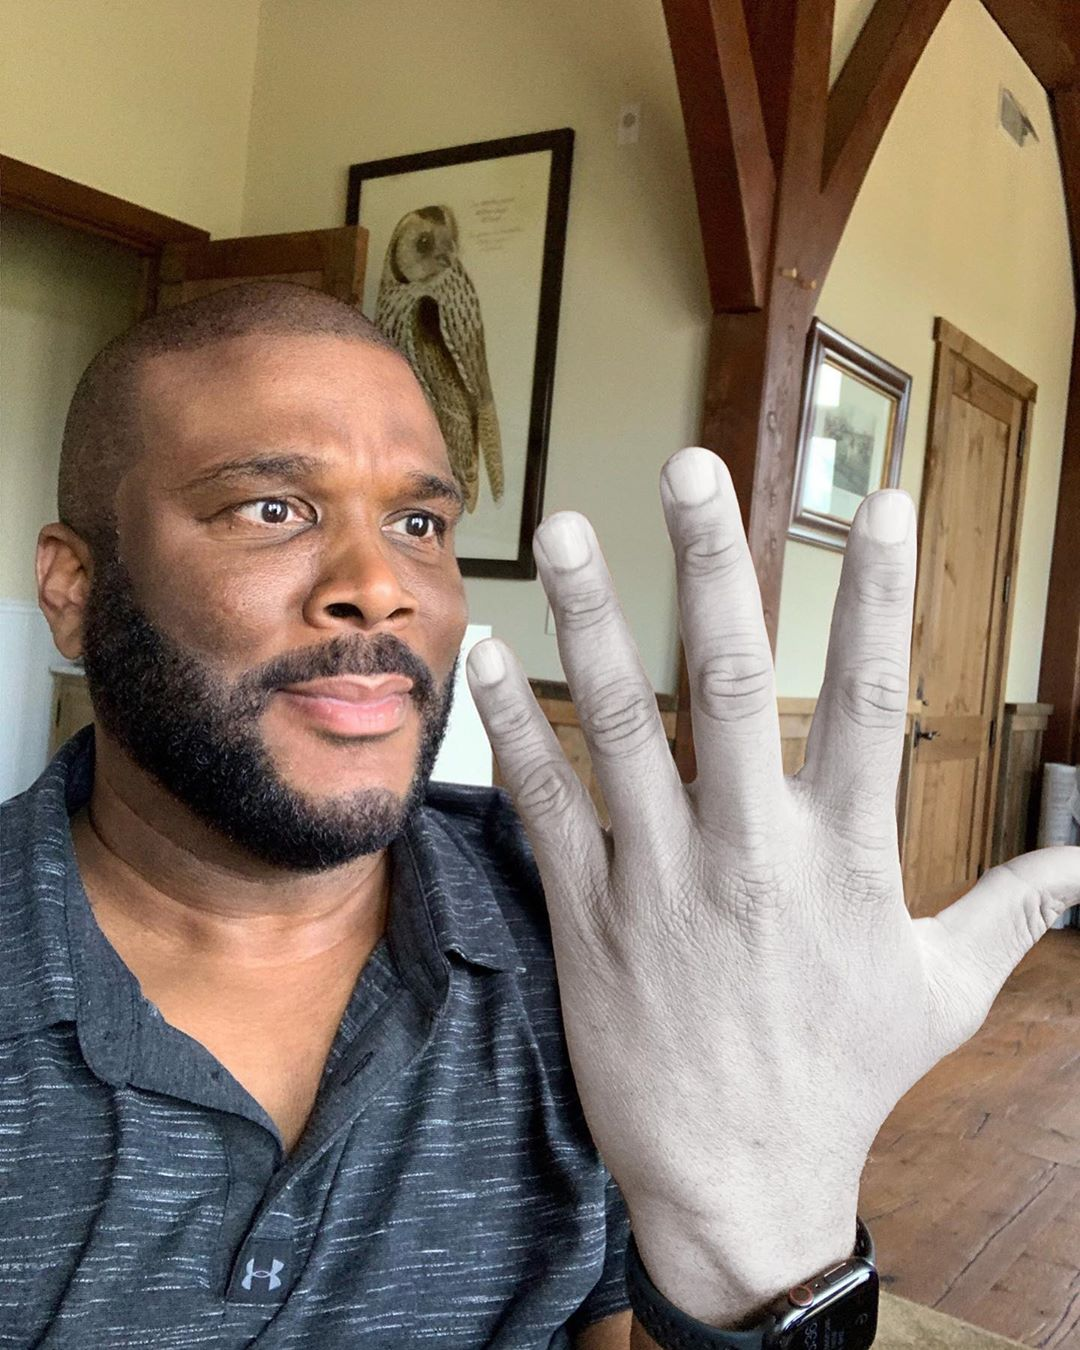 tyler perry, washed hands